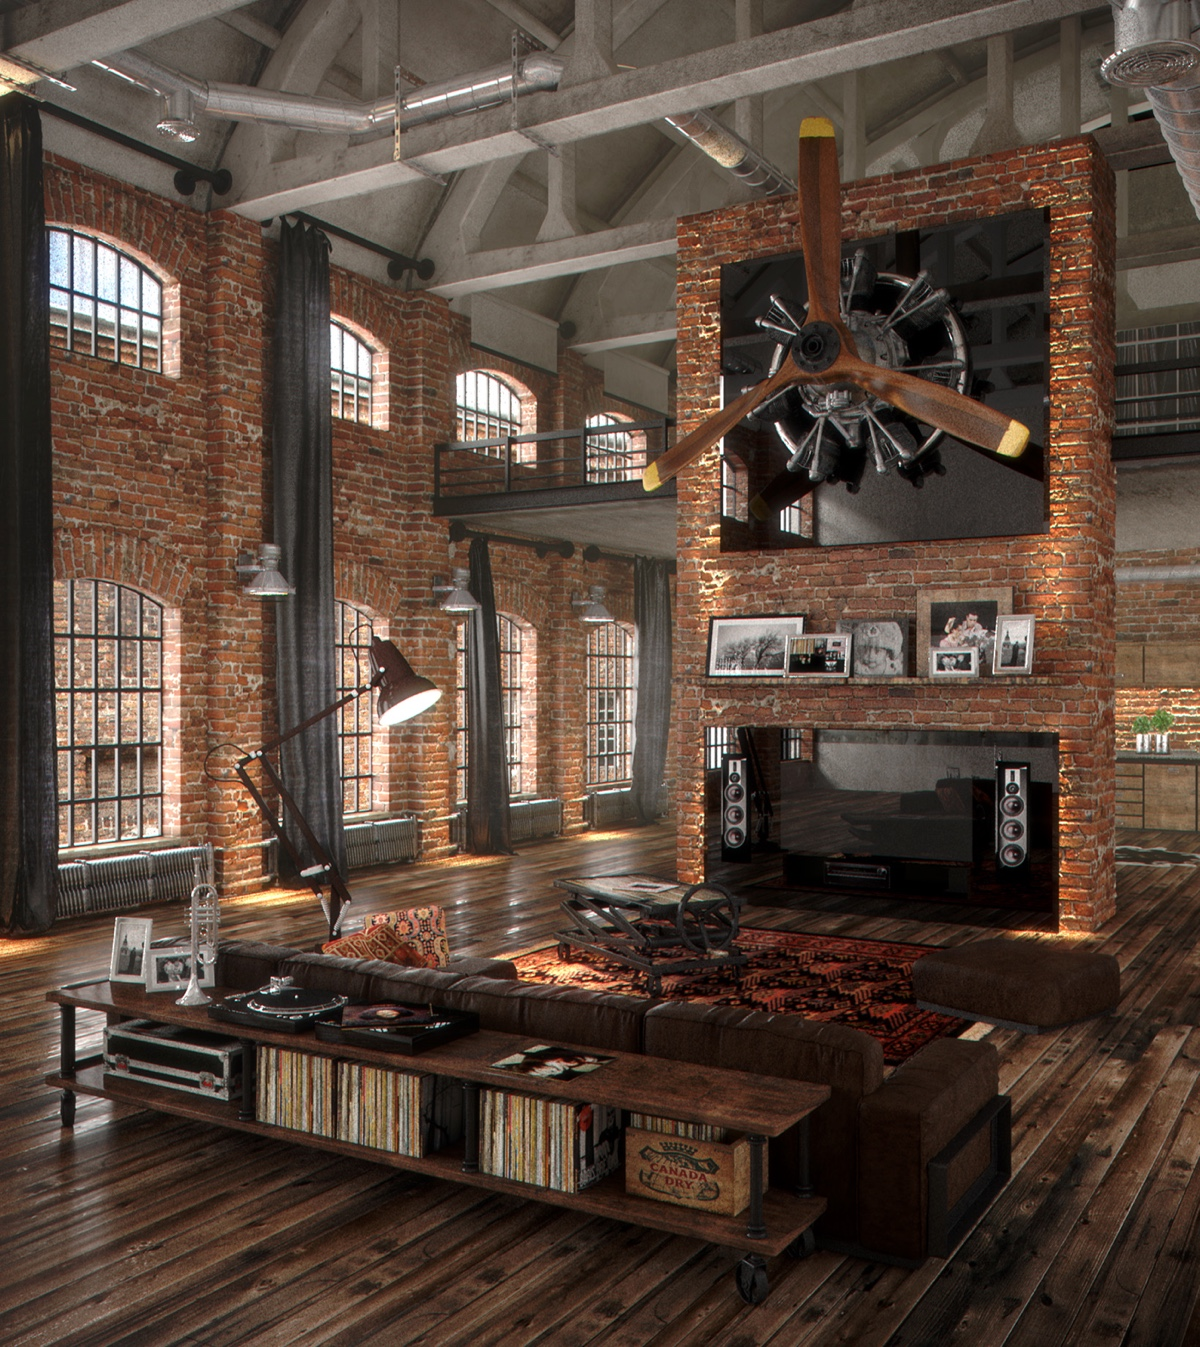 Beautiful Industrial Living Room In Loft With Wood Floors Brick Walls With TV And Plane Propeller - 53 Cool Living Rooms With Irresistible Modern Appeal